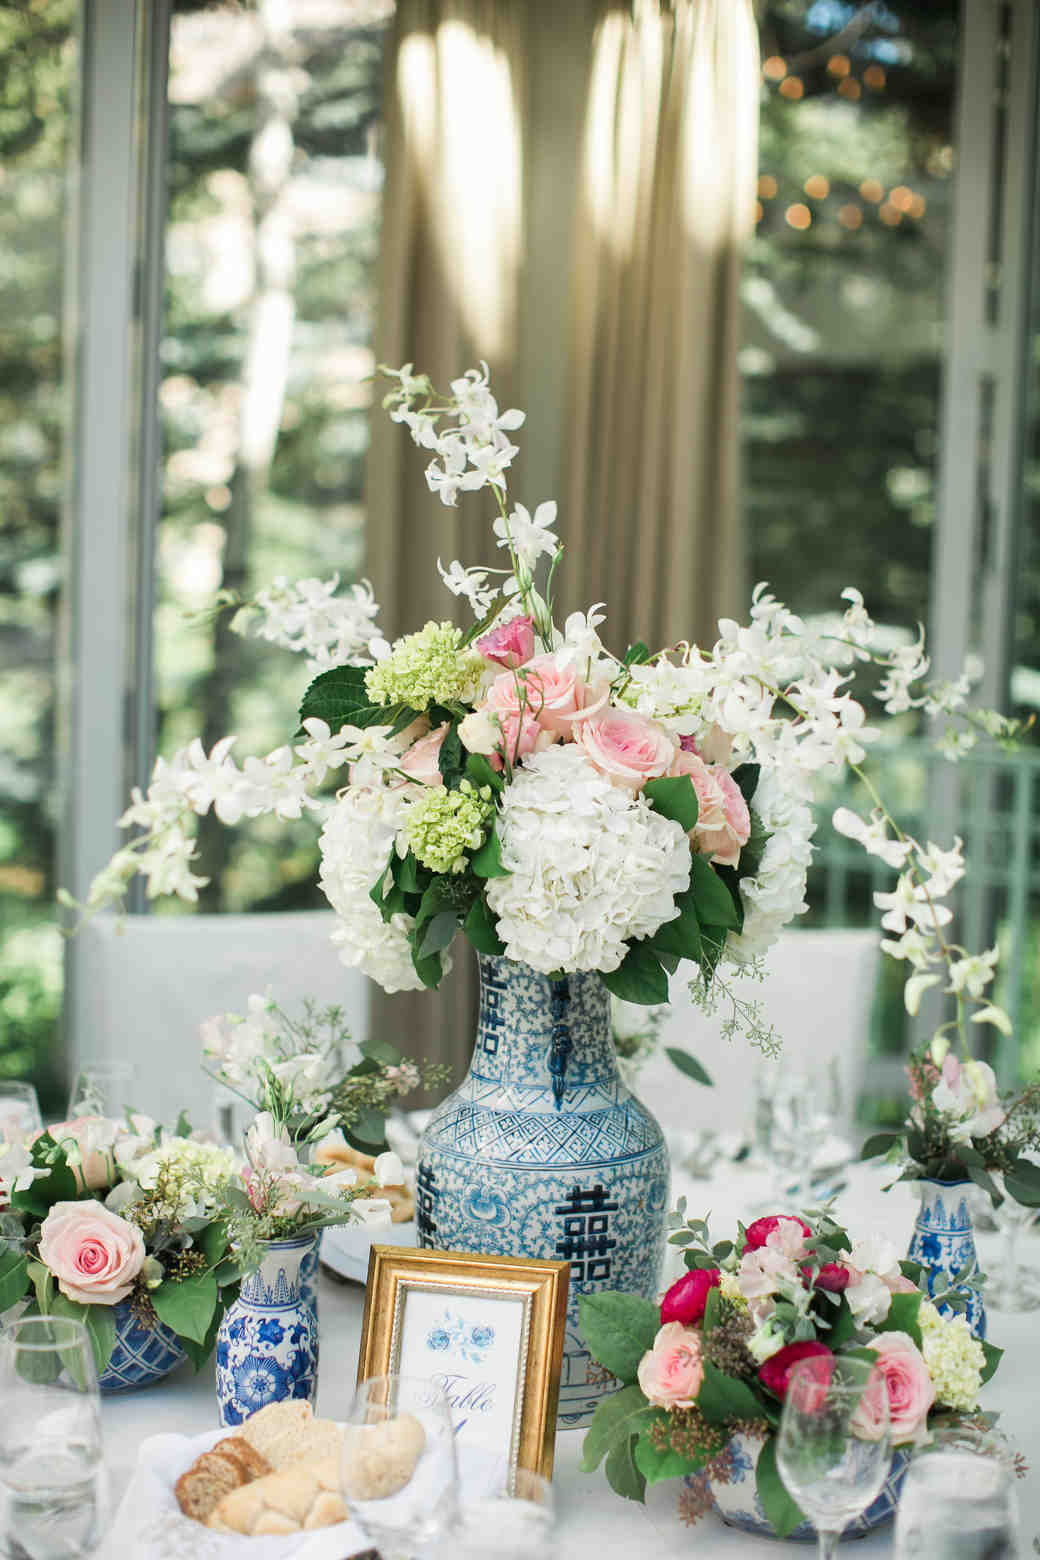 Kitchen Tea Themes 37 Bridal Shower Themes That Are Truly One Of A Kind Martha